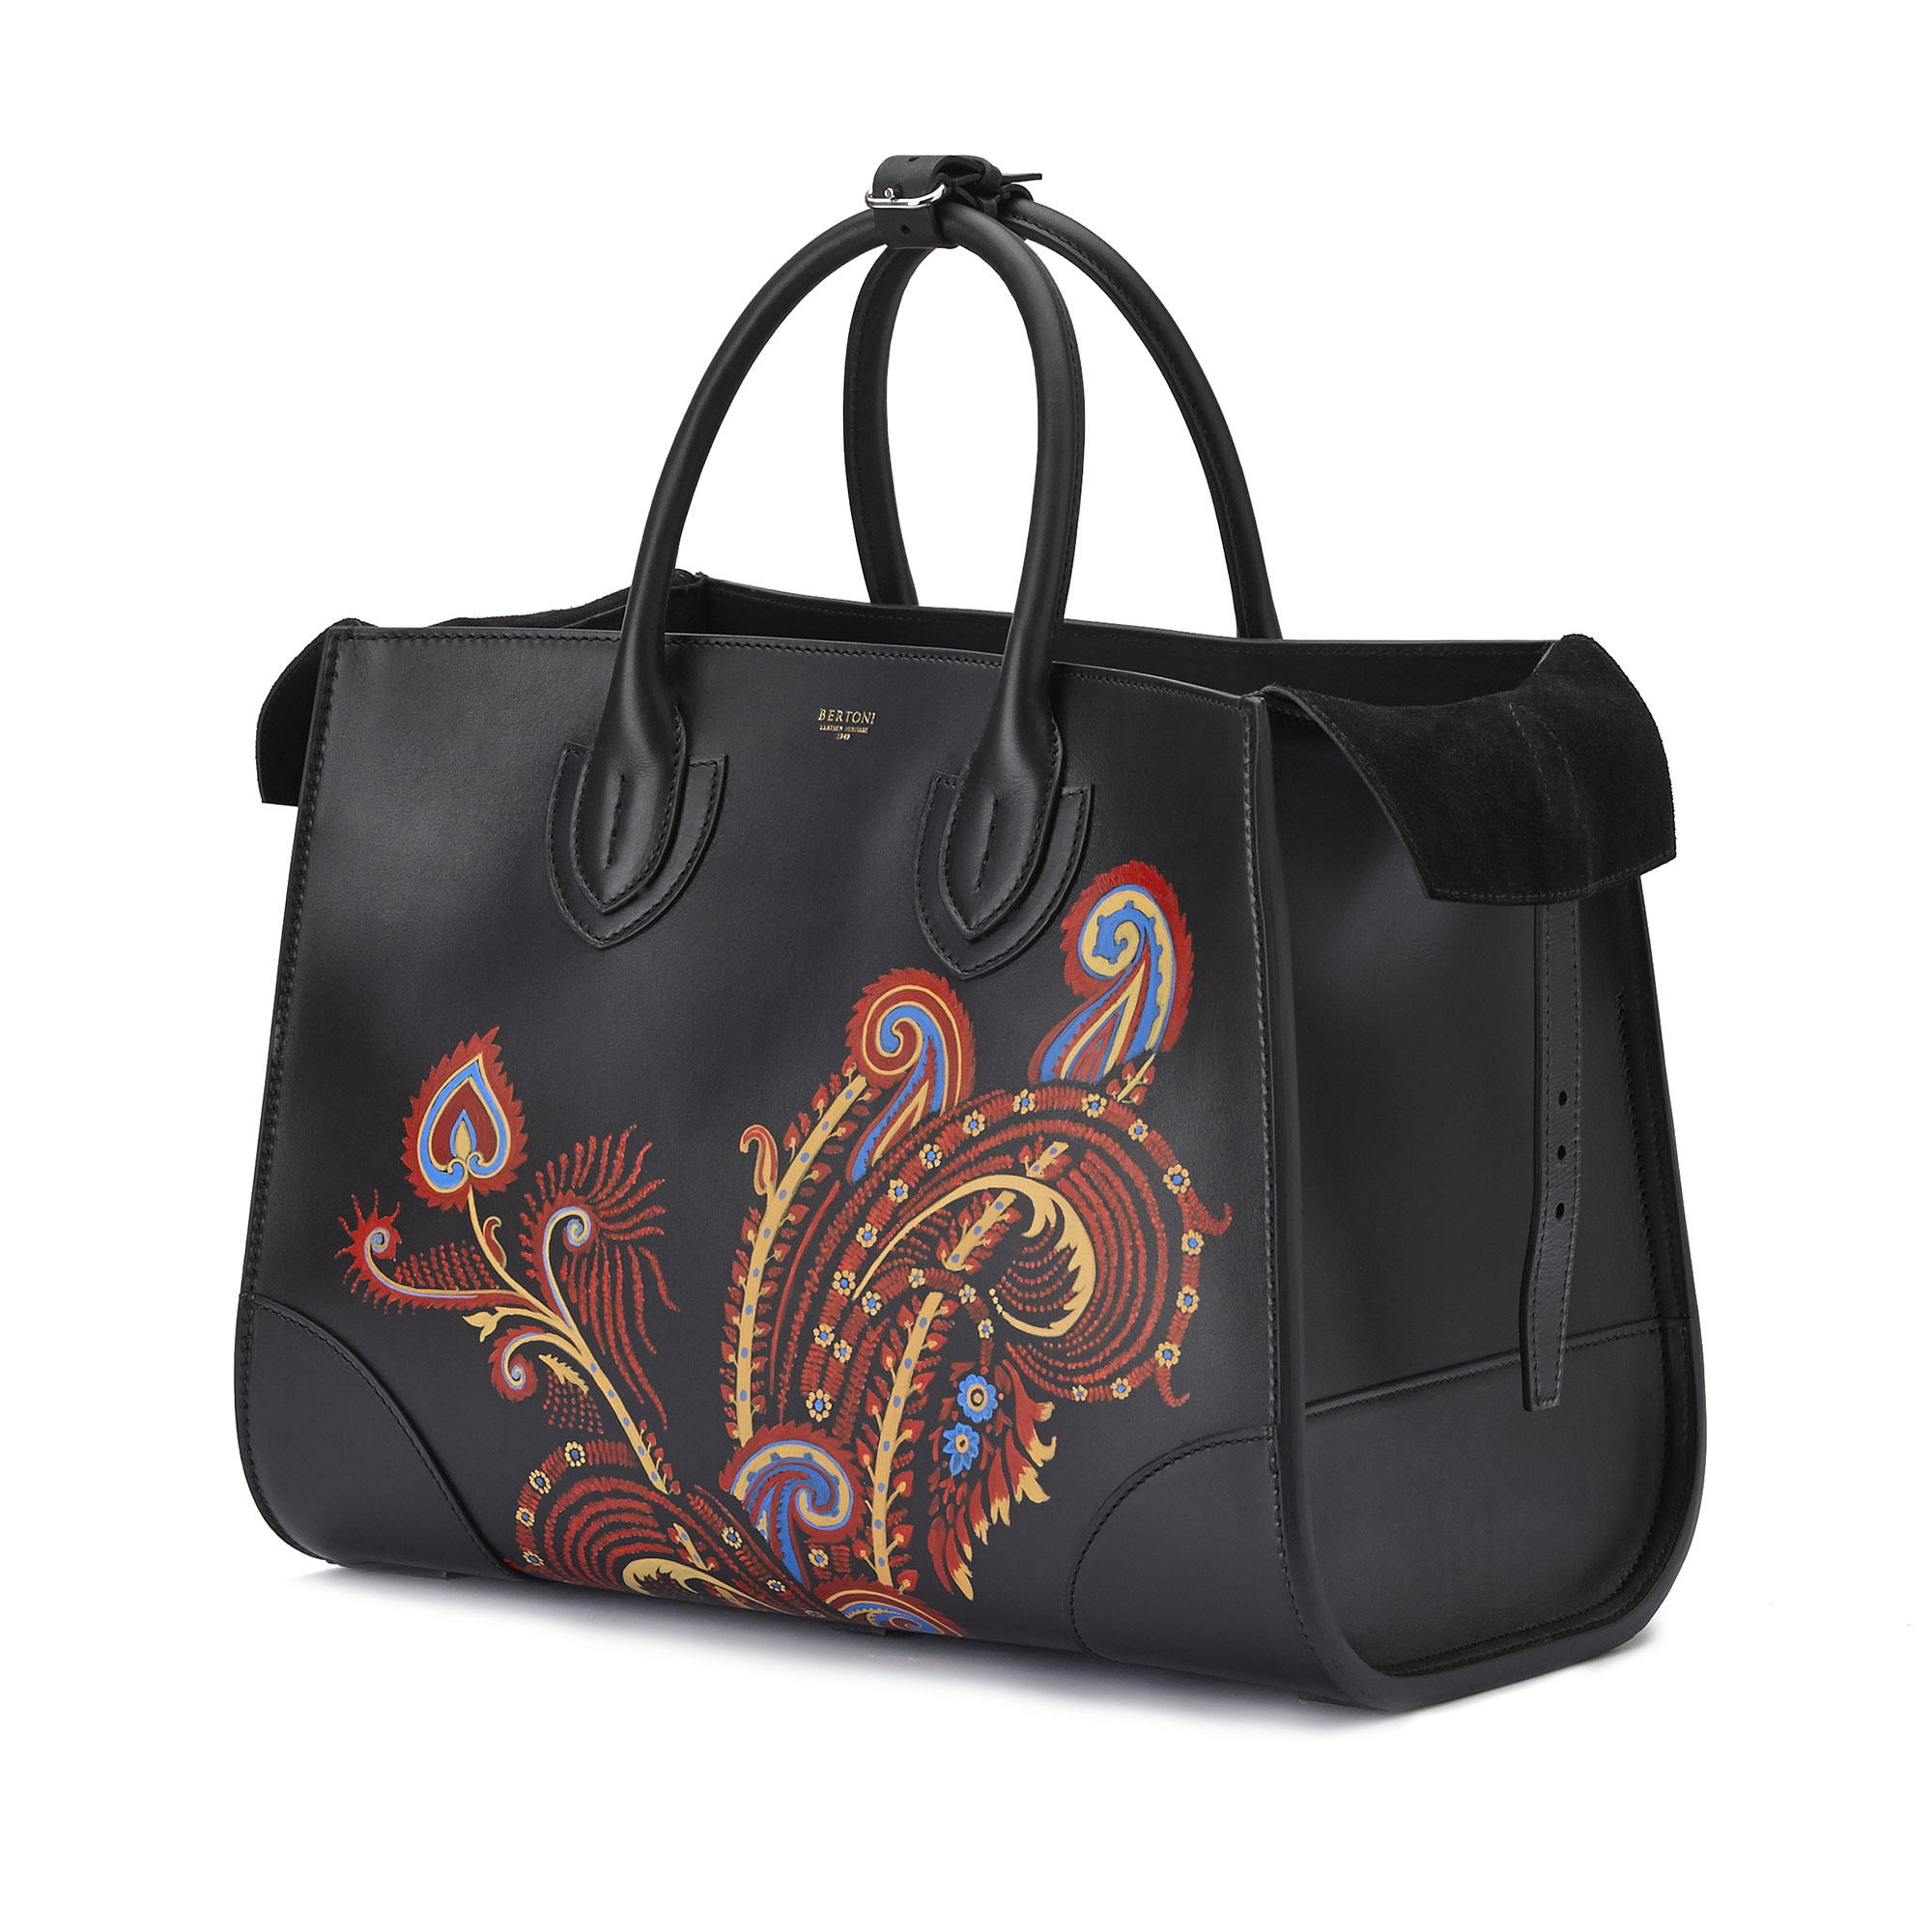 The black with hand painted paisley french calf Darcy large bag by Bertoni 1949 03